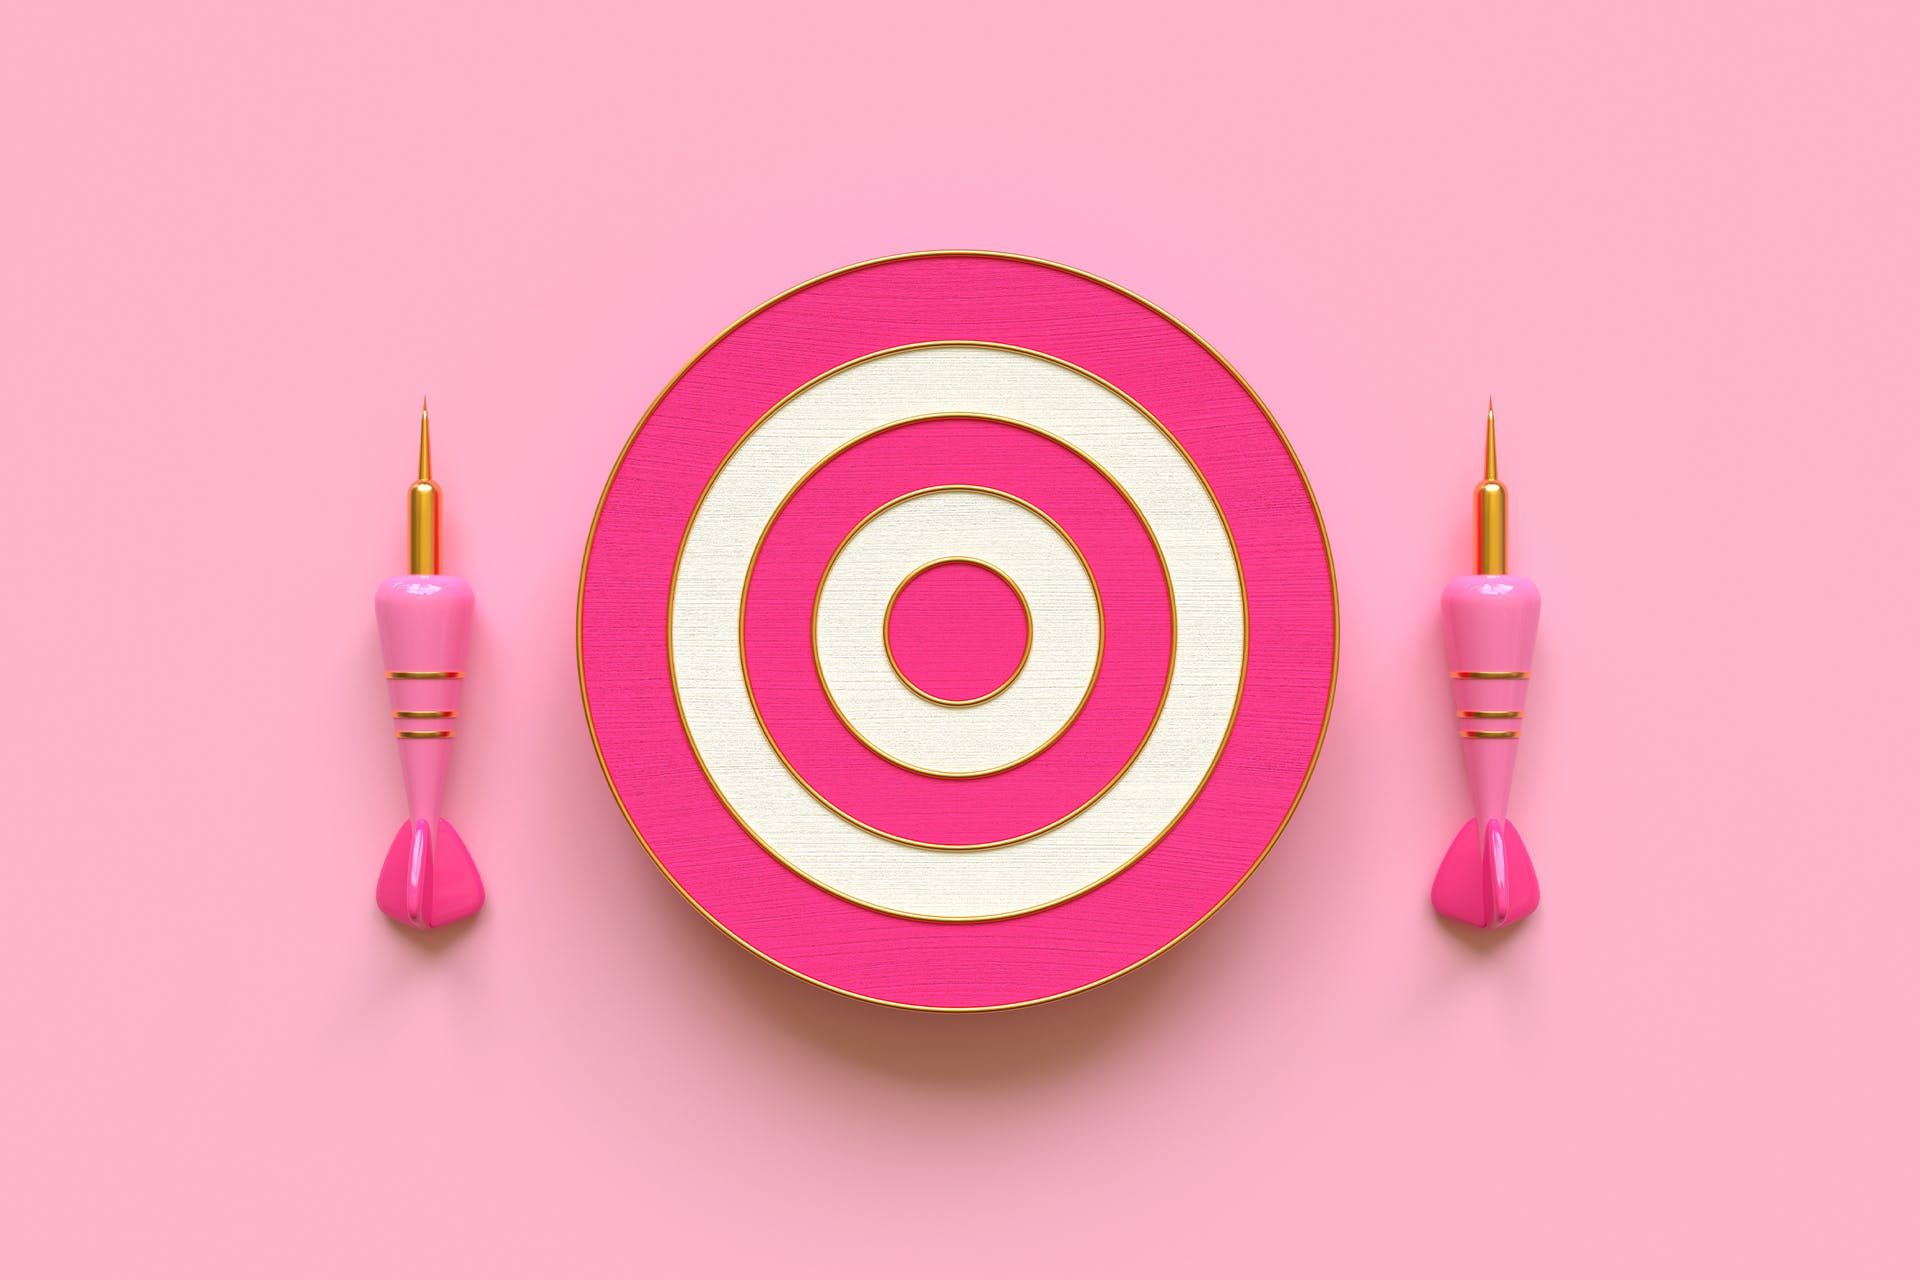 A bullseye dartboard with two pink darts next to it.